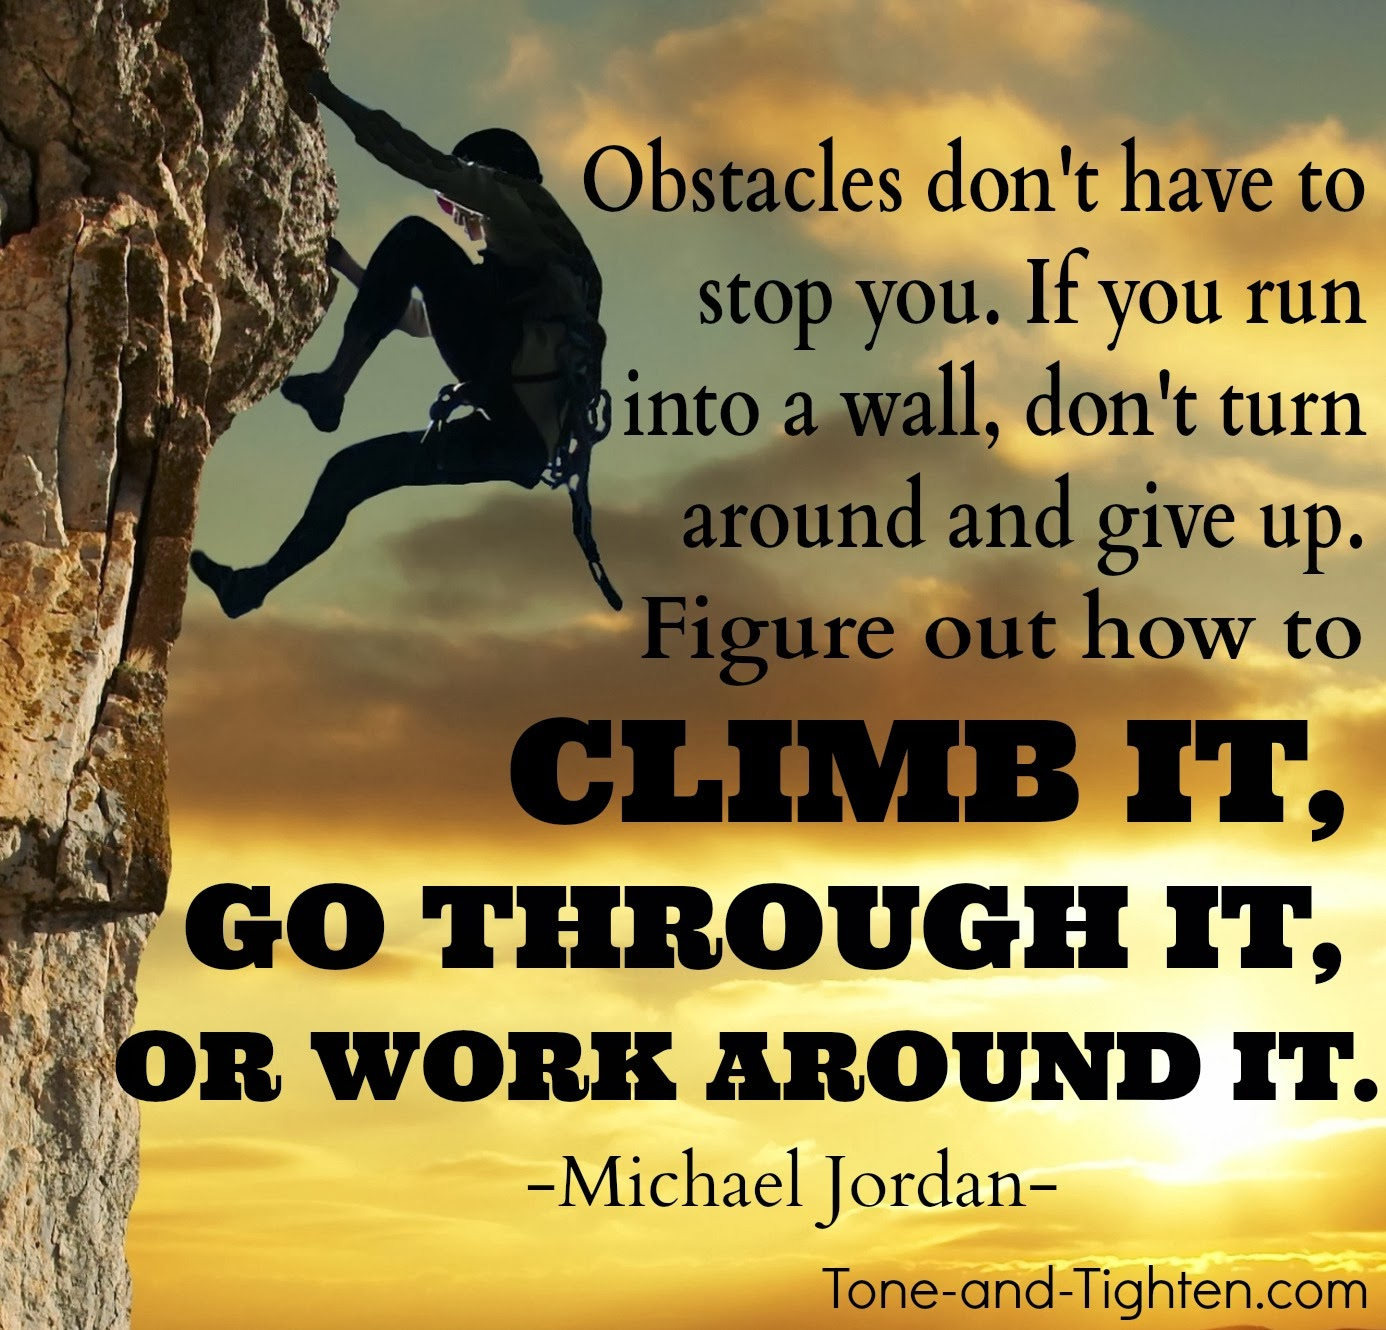 Inspirational Quotes About Failure: Motivational Quotes About Overcoming Obstacles. QuotesGram